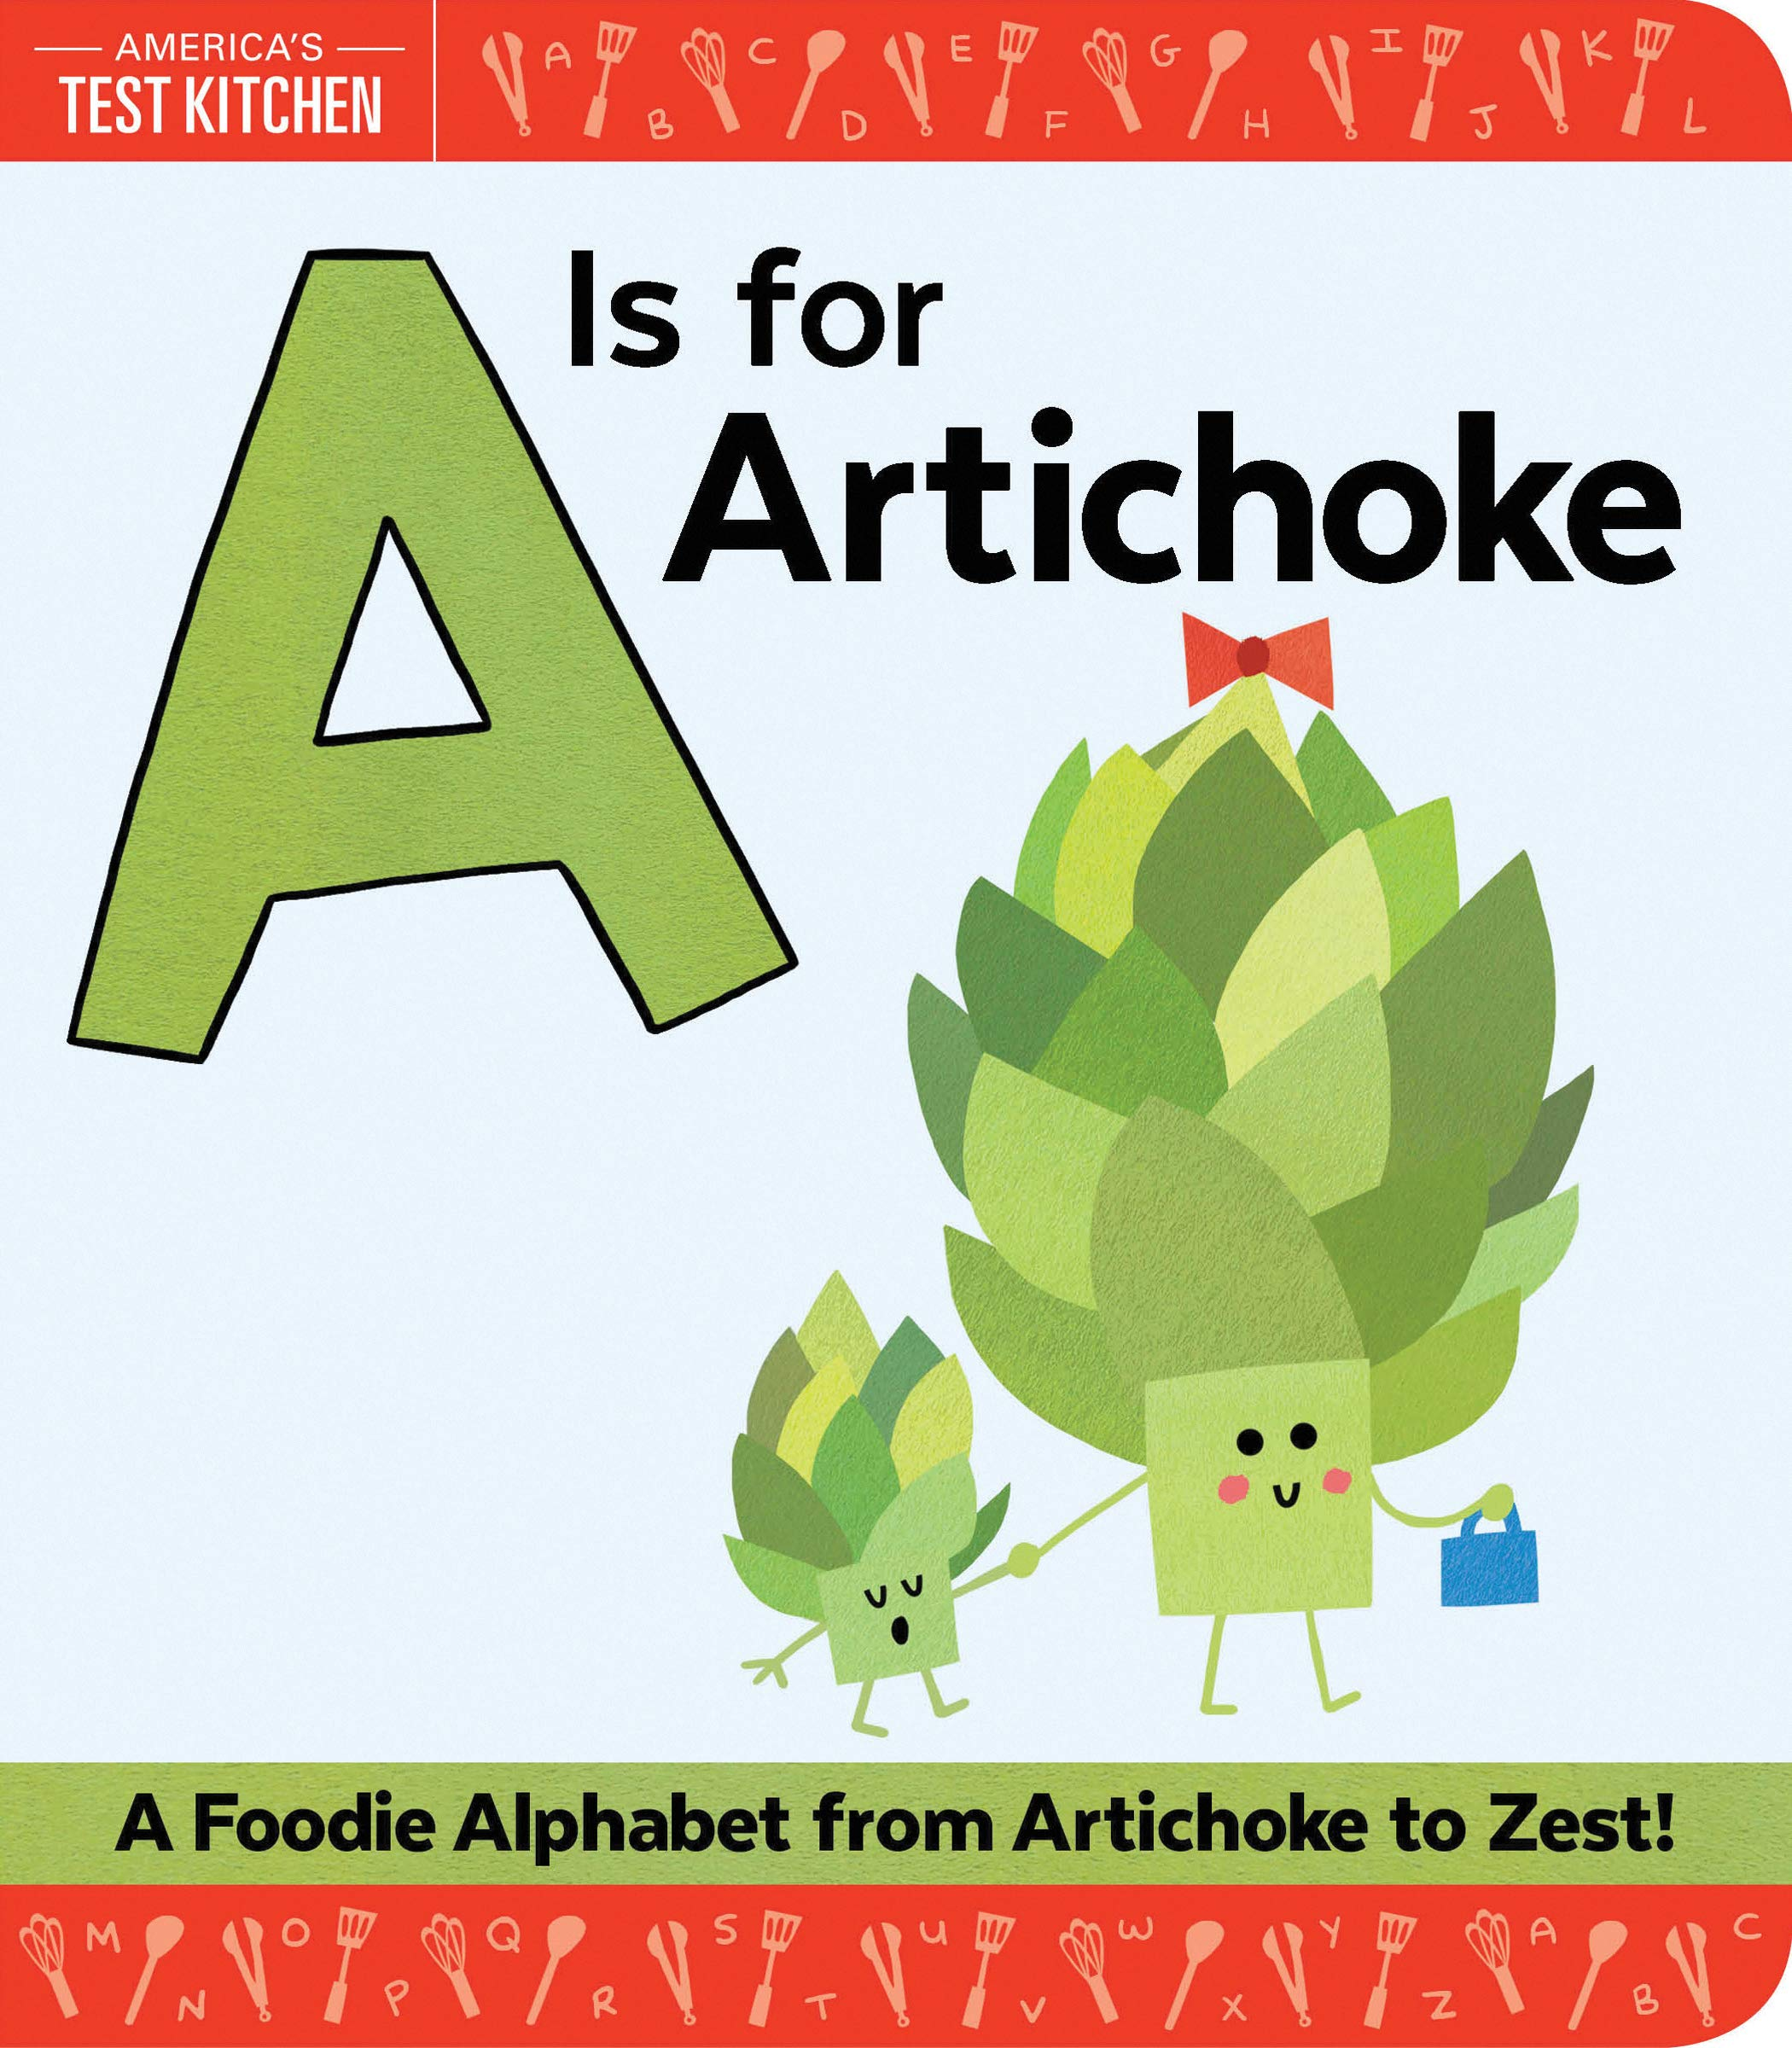 A Is for Artichoke: An ABC Book of Food, Kitchens, and Cooking for Kids,  from Artichoke to Zest (America's Test Kitchen Kids): America's Test  Kitchen Kids, Frost, Maddie: 9781492670032: Amazon.com: Books